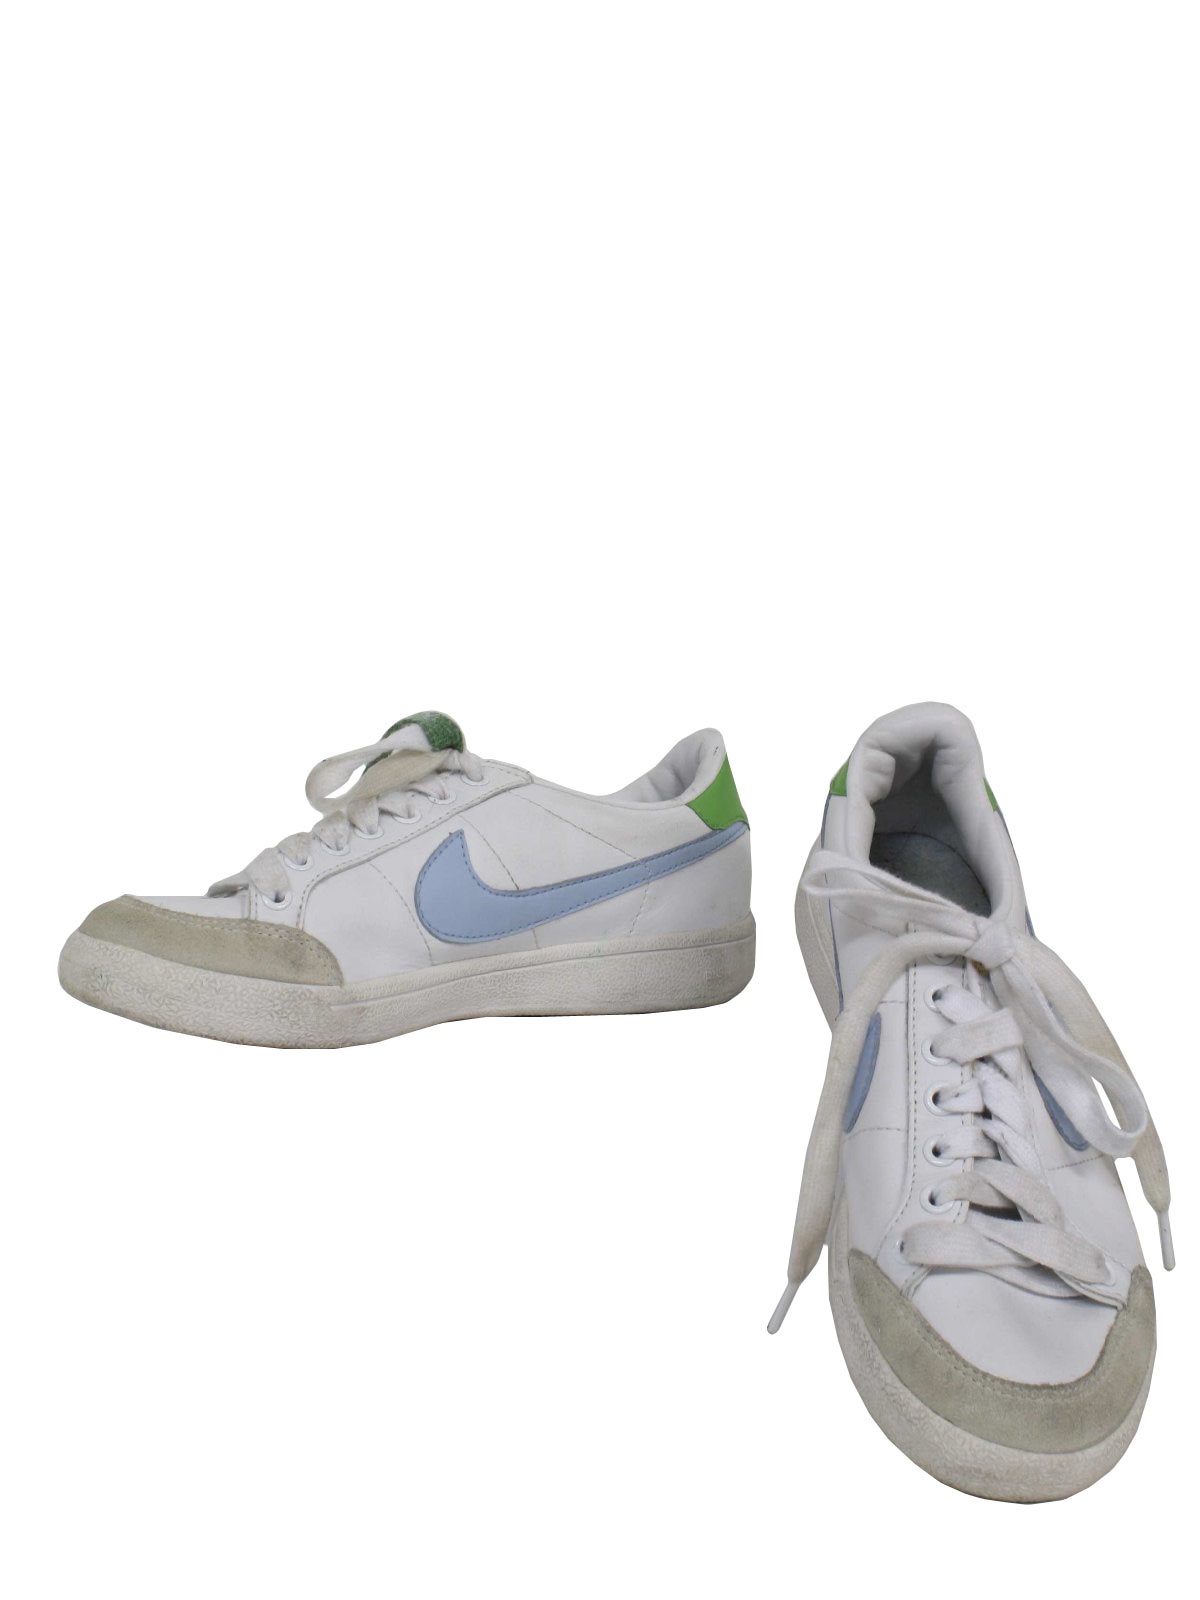 1990's Vintage Nike Shoes: 90s -Nike- Womens white with light blue swoosh  flat bottom old school style tennis shoes with green back -Nike-.